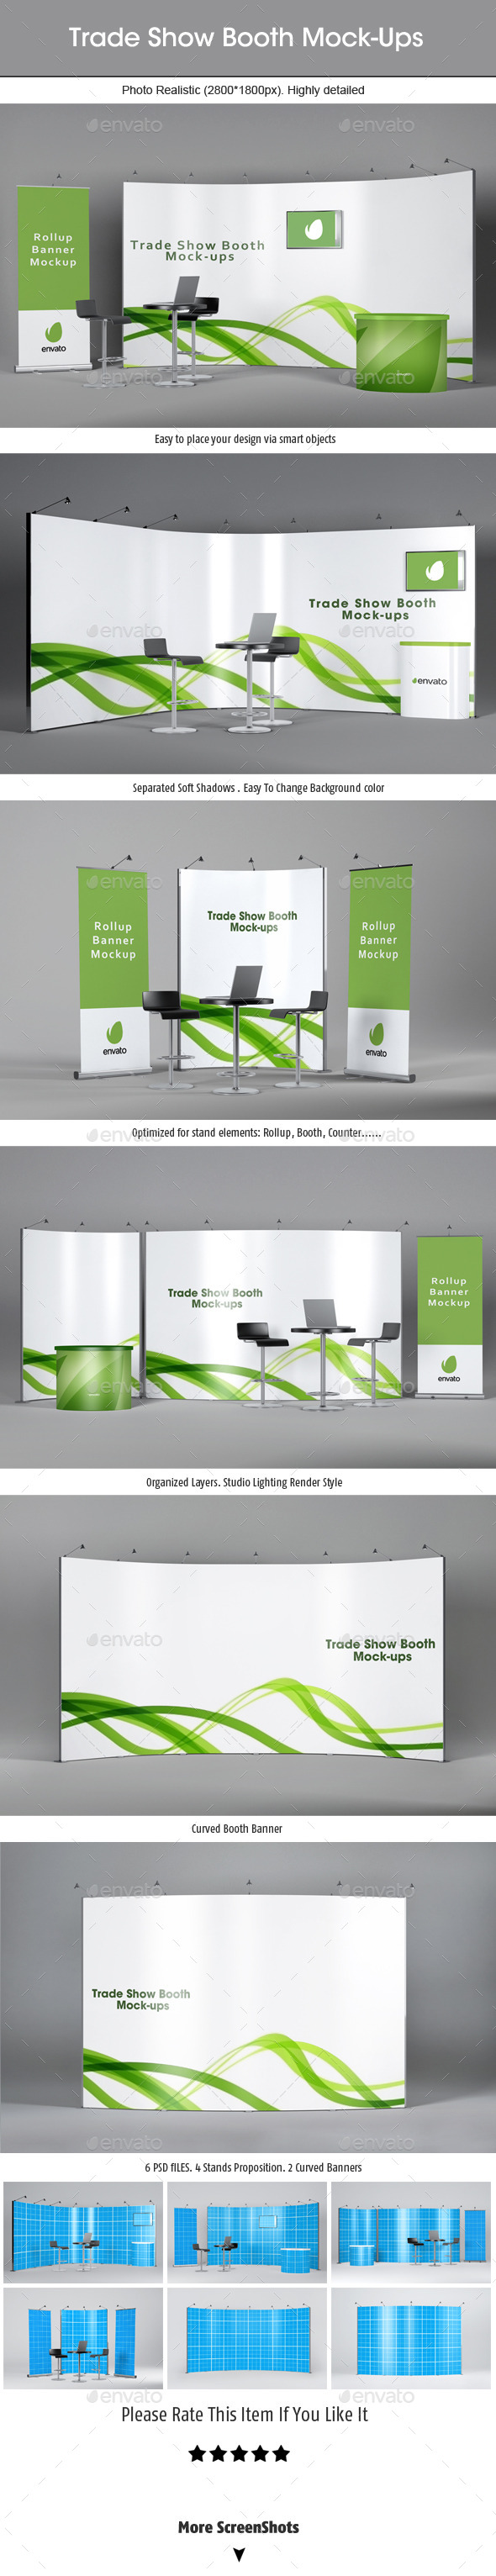 GraphicRiver Trade Show Booth Mockups v2 9032999